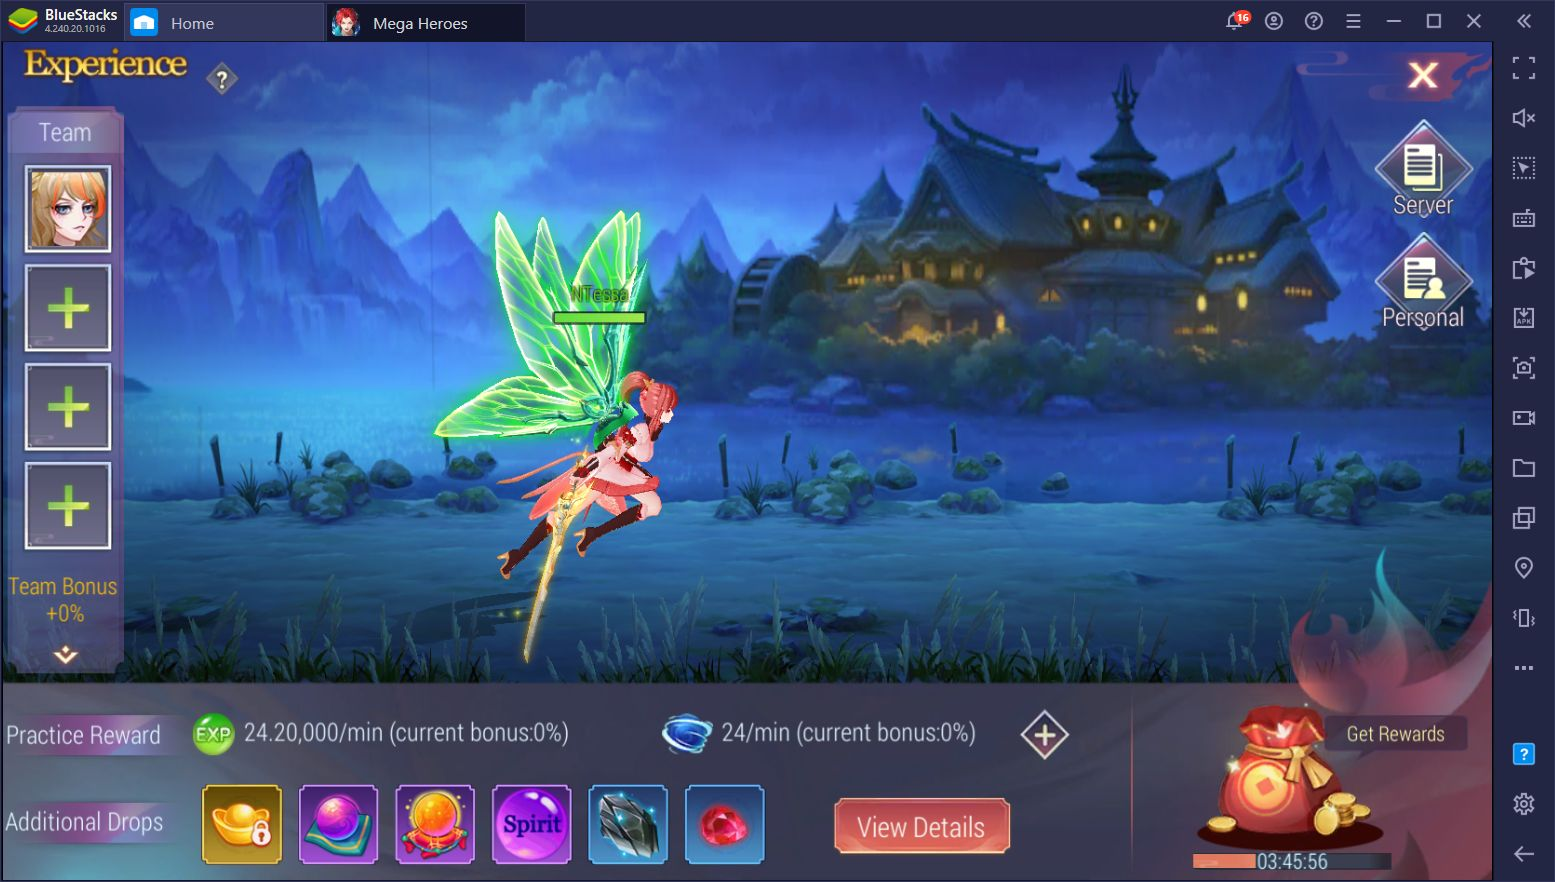 Mega Heroes – The Best Tips, Cheats, and Codes For Getting Started on the Right Foot